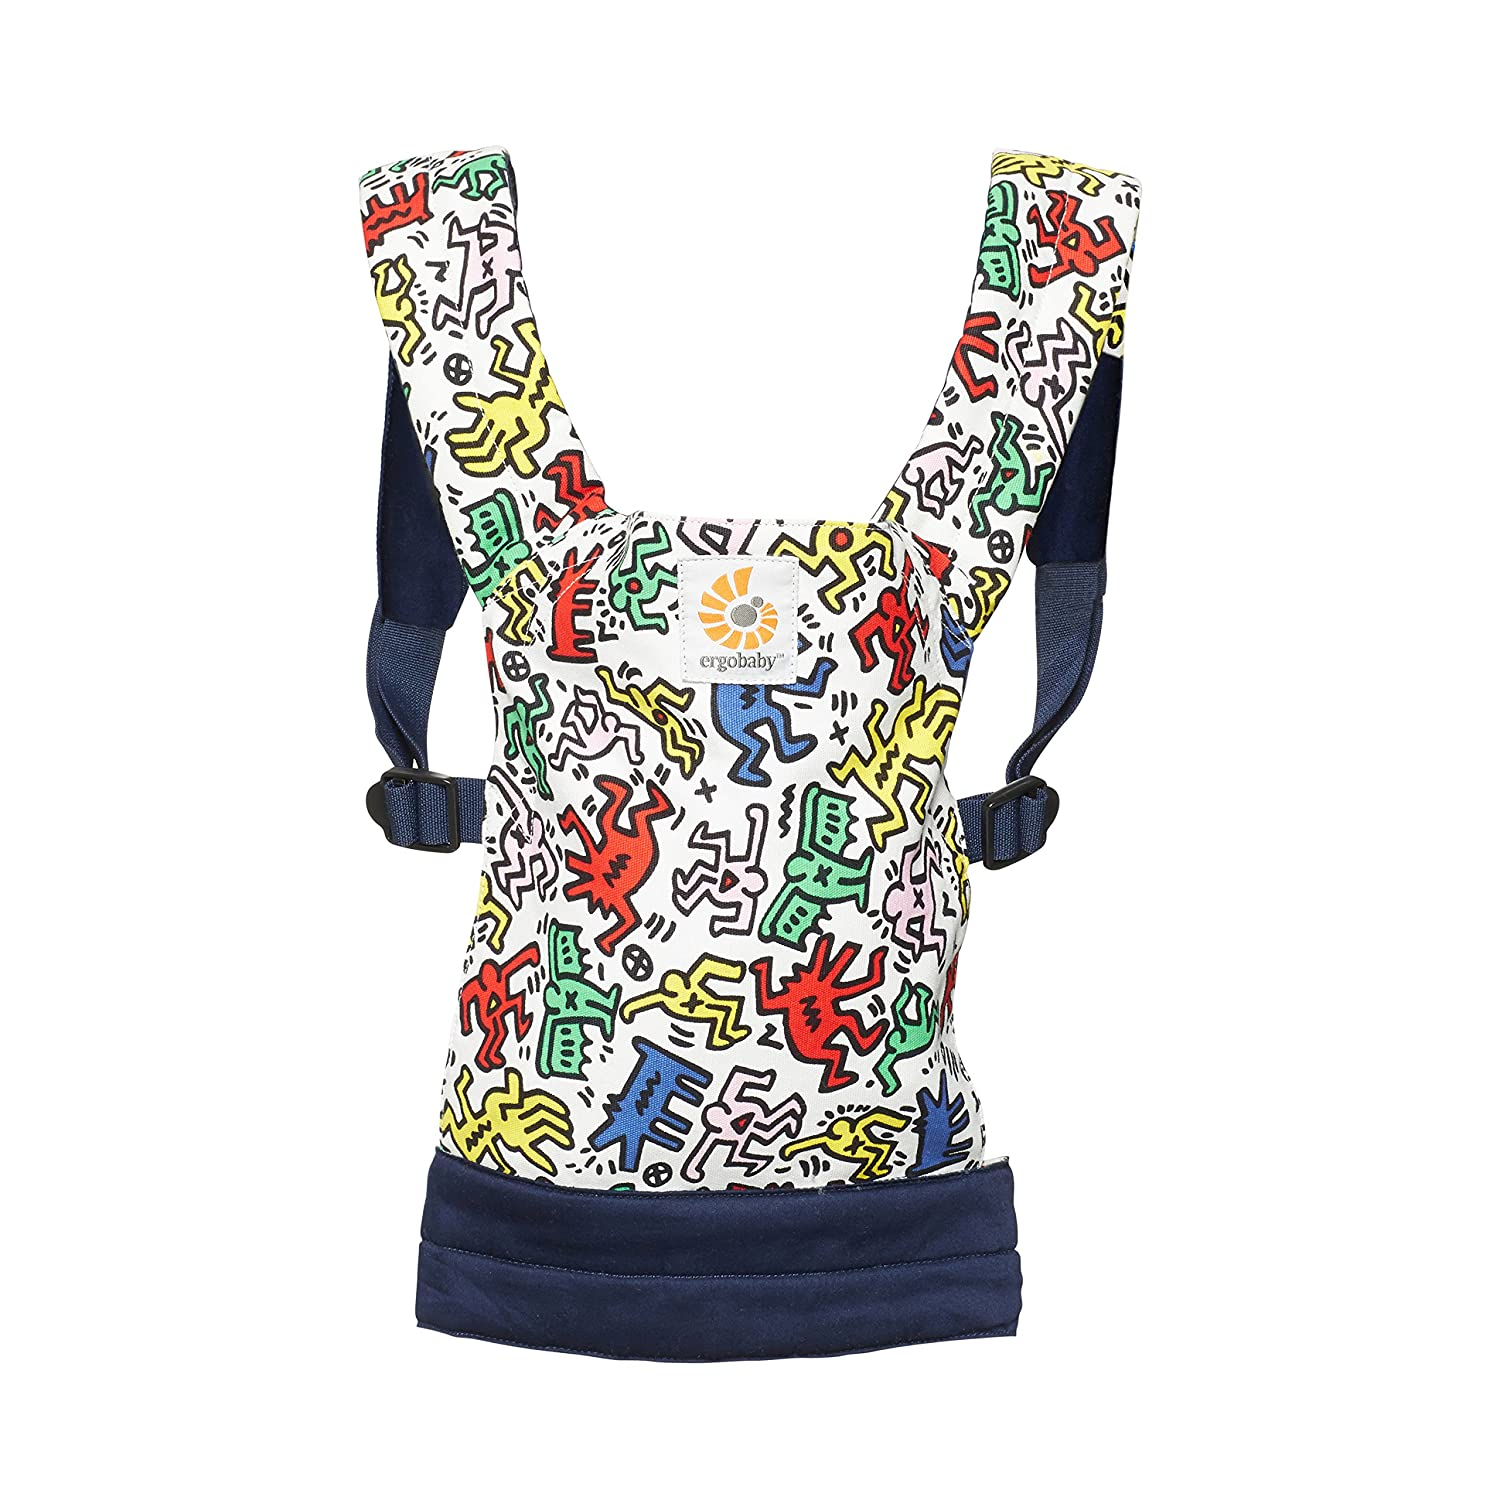 ERGObaby DCAKHWHT Puppentrage Special Edition KEITH HARING - POP, mehrfarbig ERGObaby Carrier GmbH